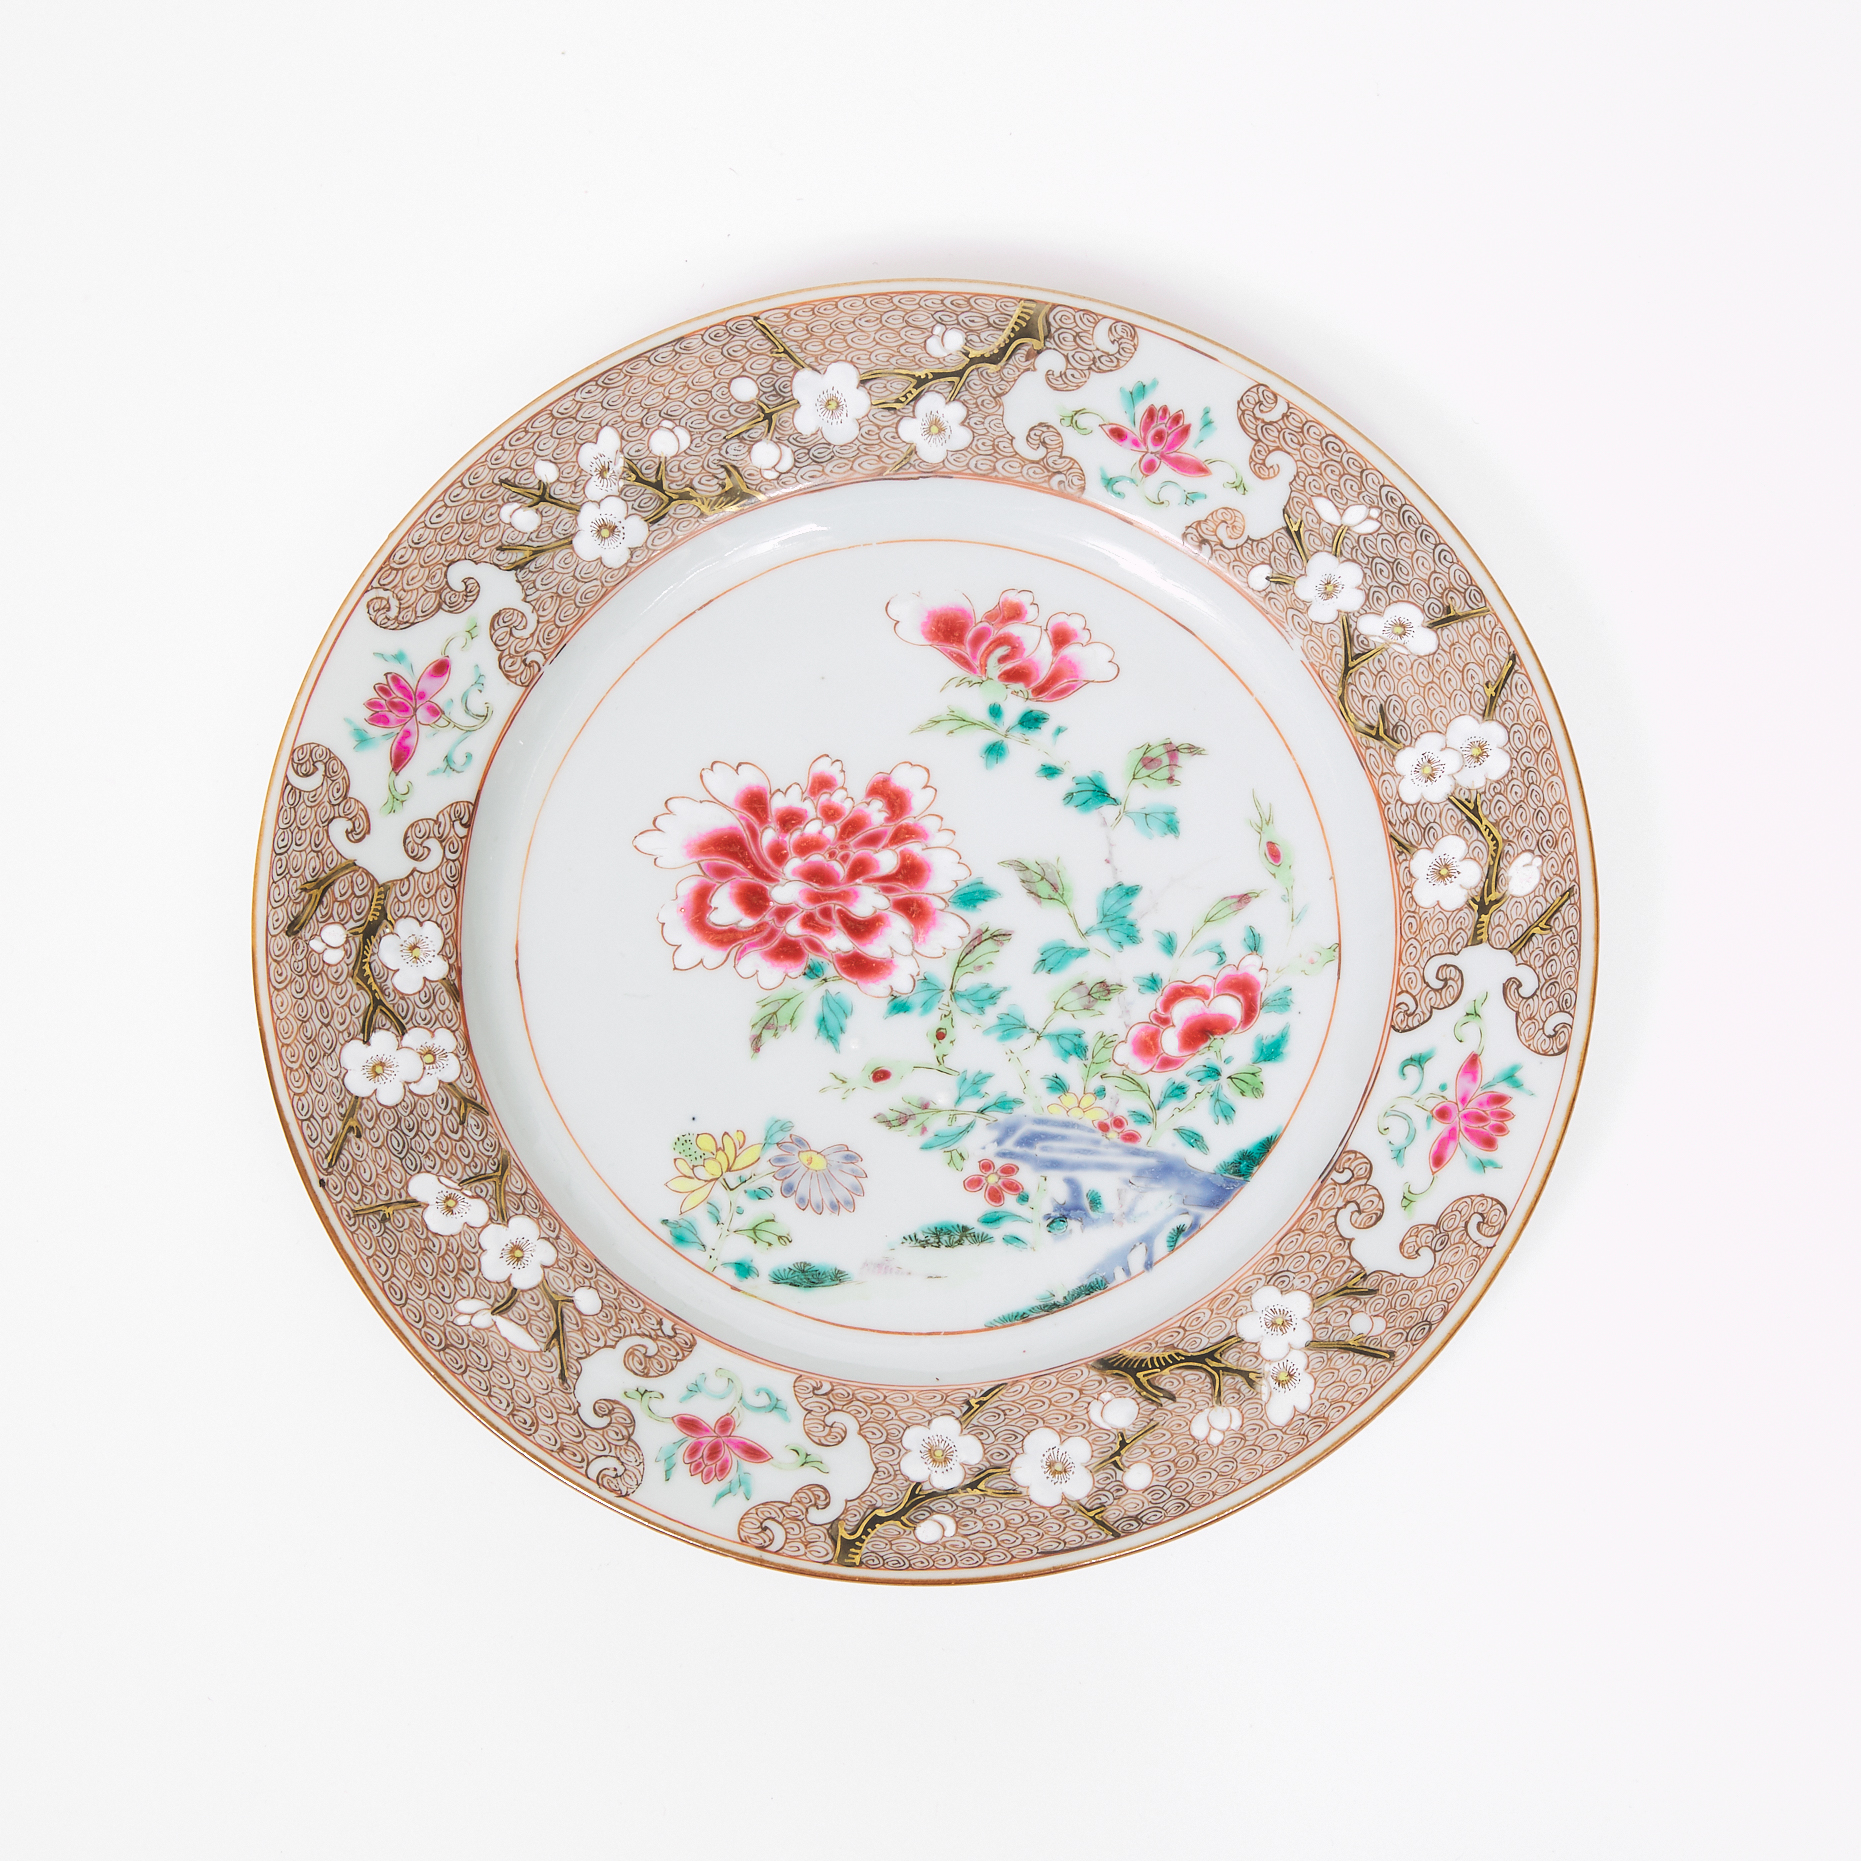 A Well-Painted Famille Rose Plate with Peonies, Qianlong Period, 18th Century